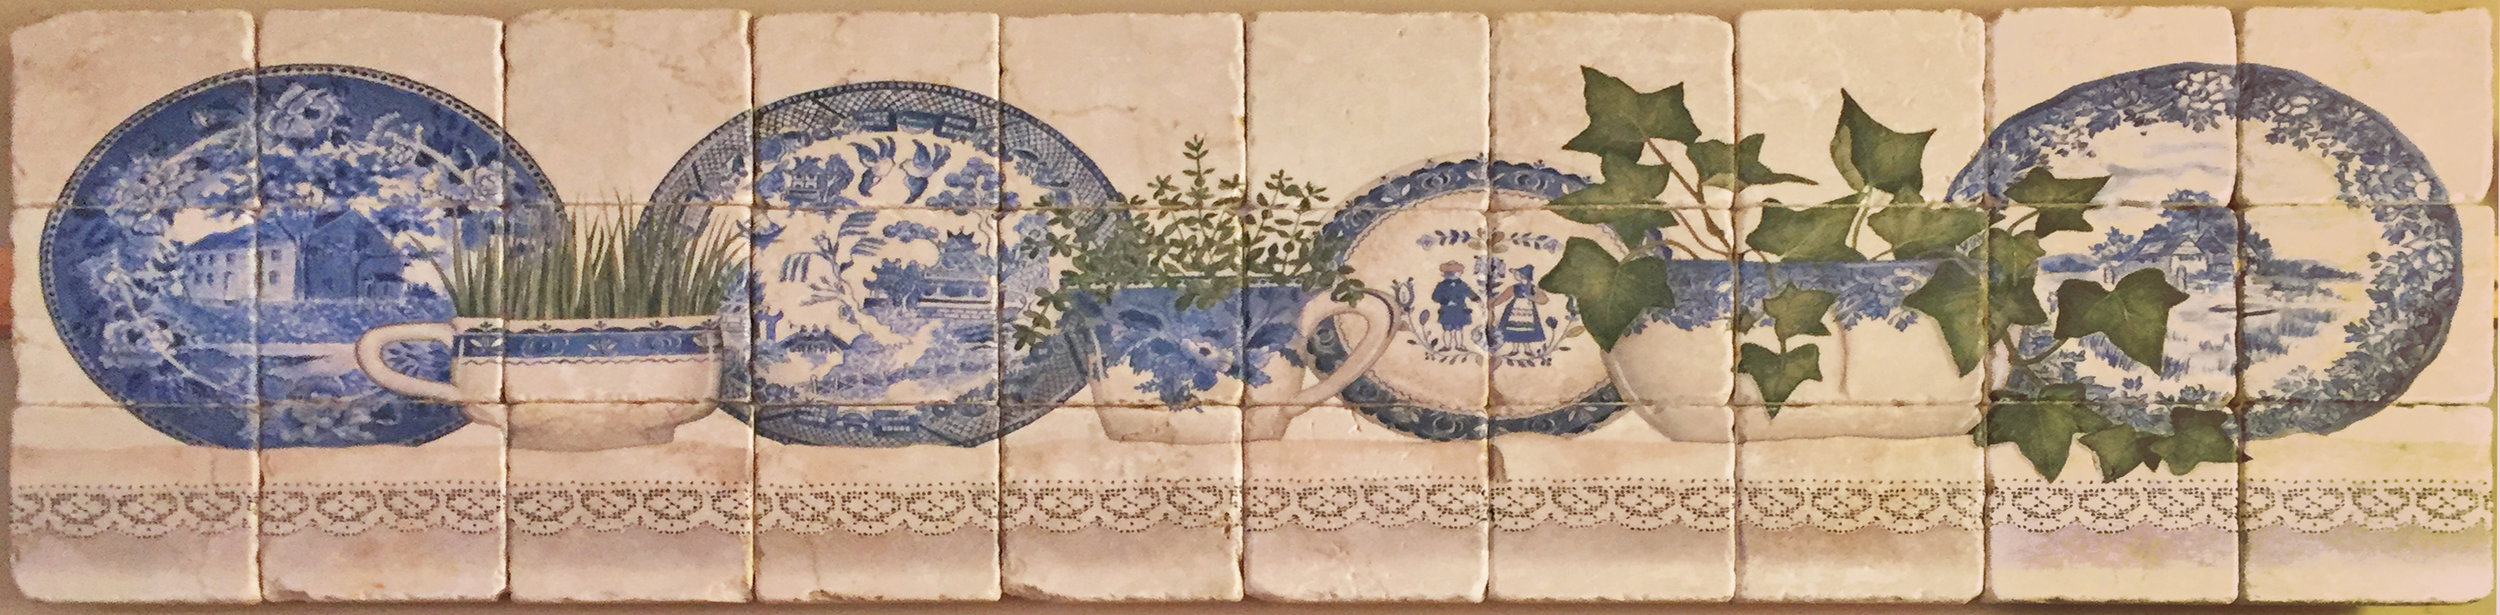 Tile mural depicting blue Delft plates and cups motifs. Available at Statements.